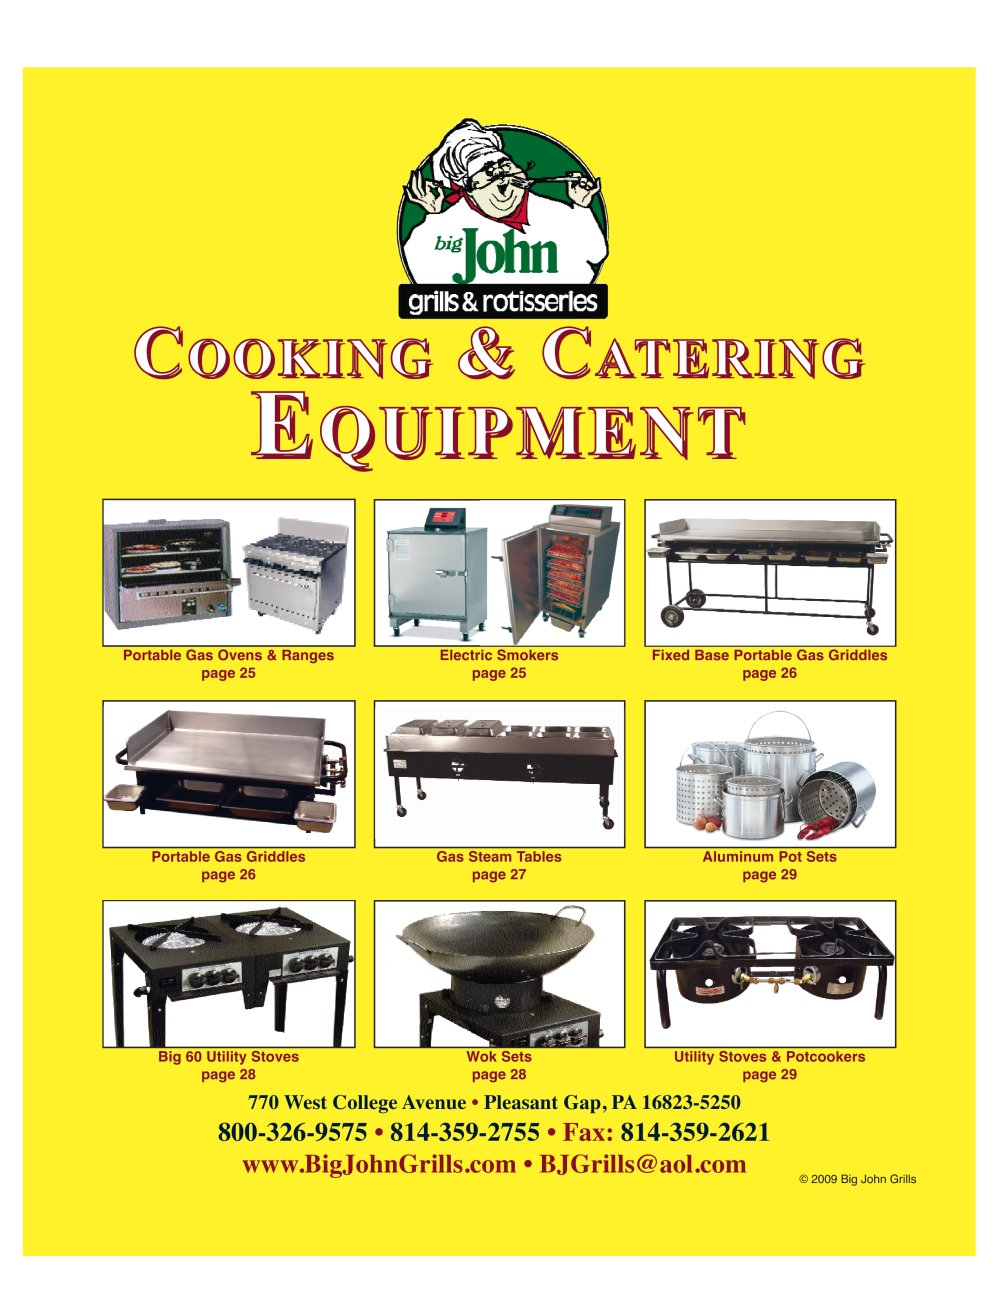 Kitchen equipment and their uses - List Of Kitchen Utensils And Their Uses With Pictures Pdf Commercial Equipment